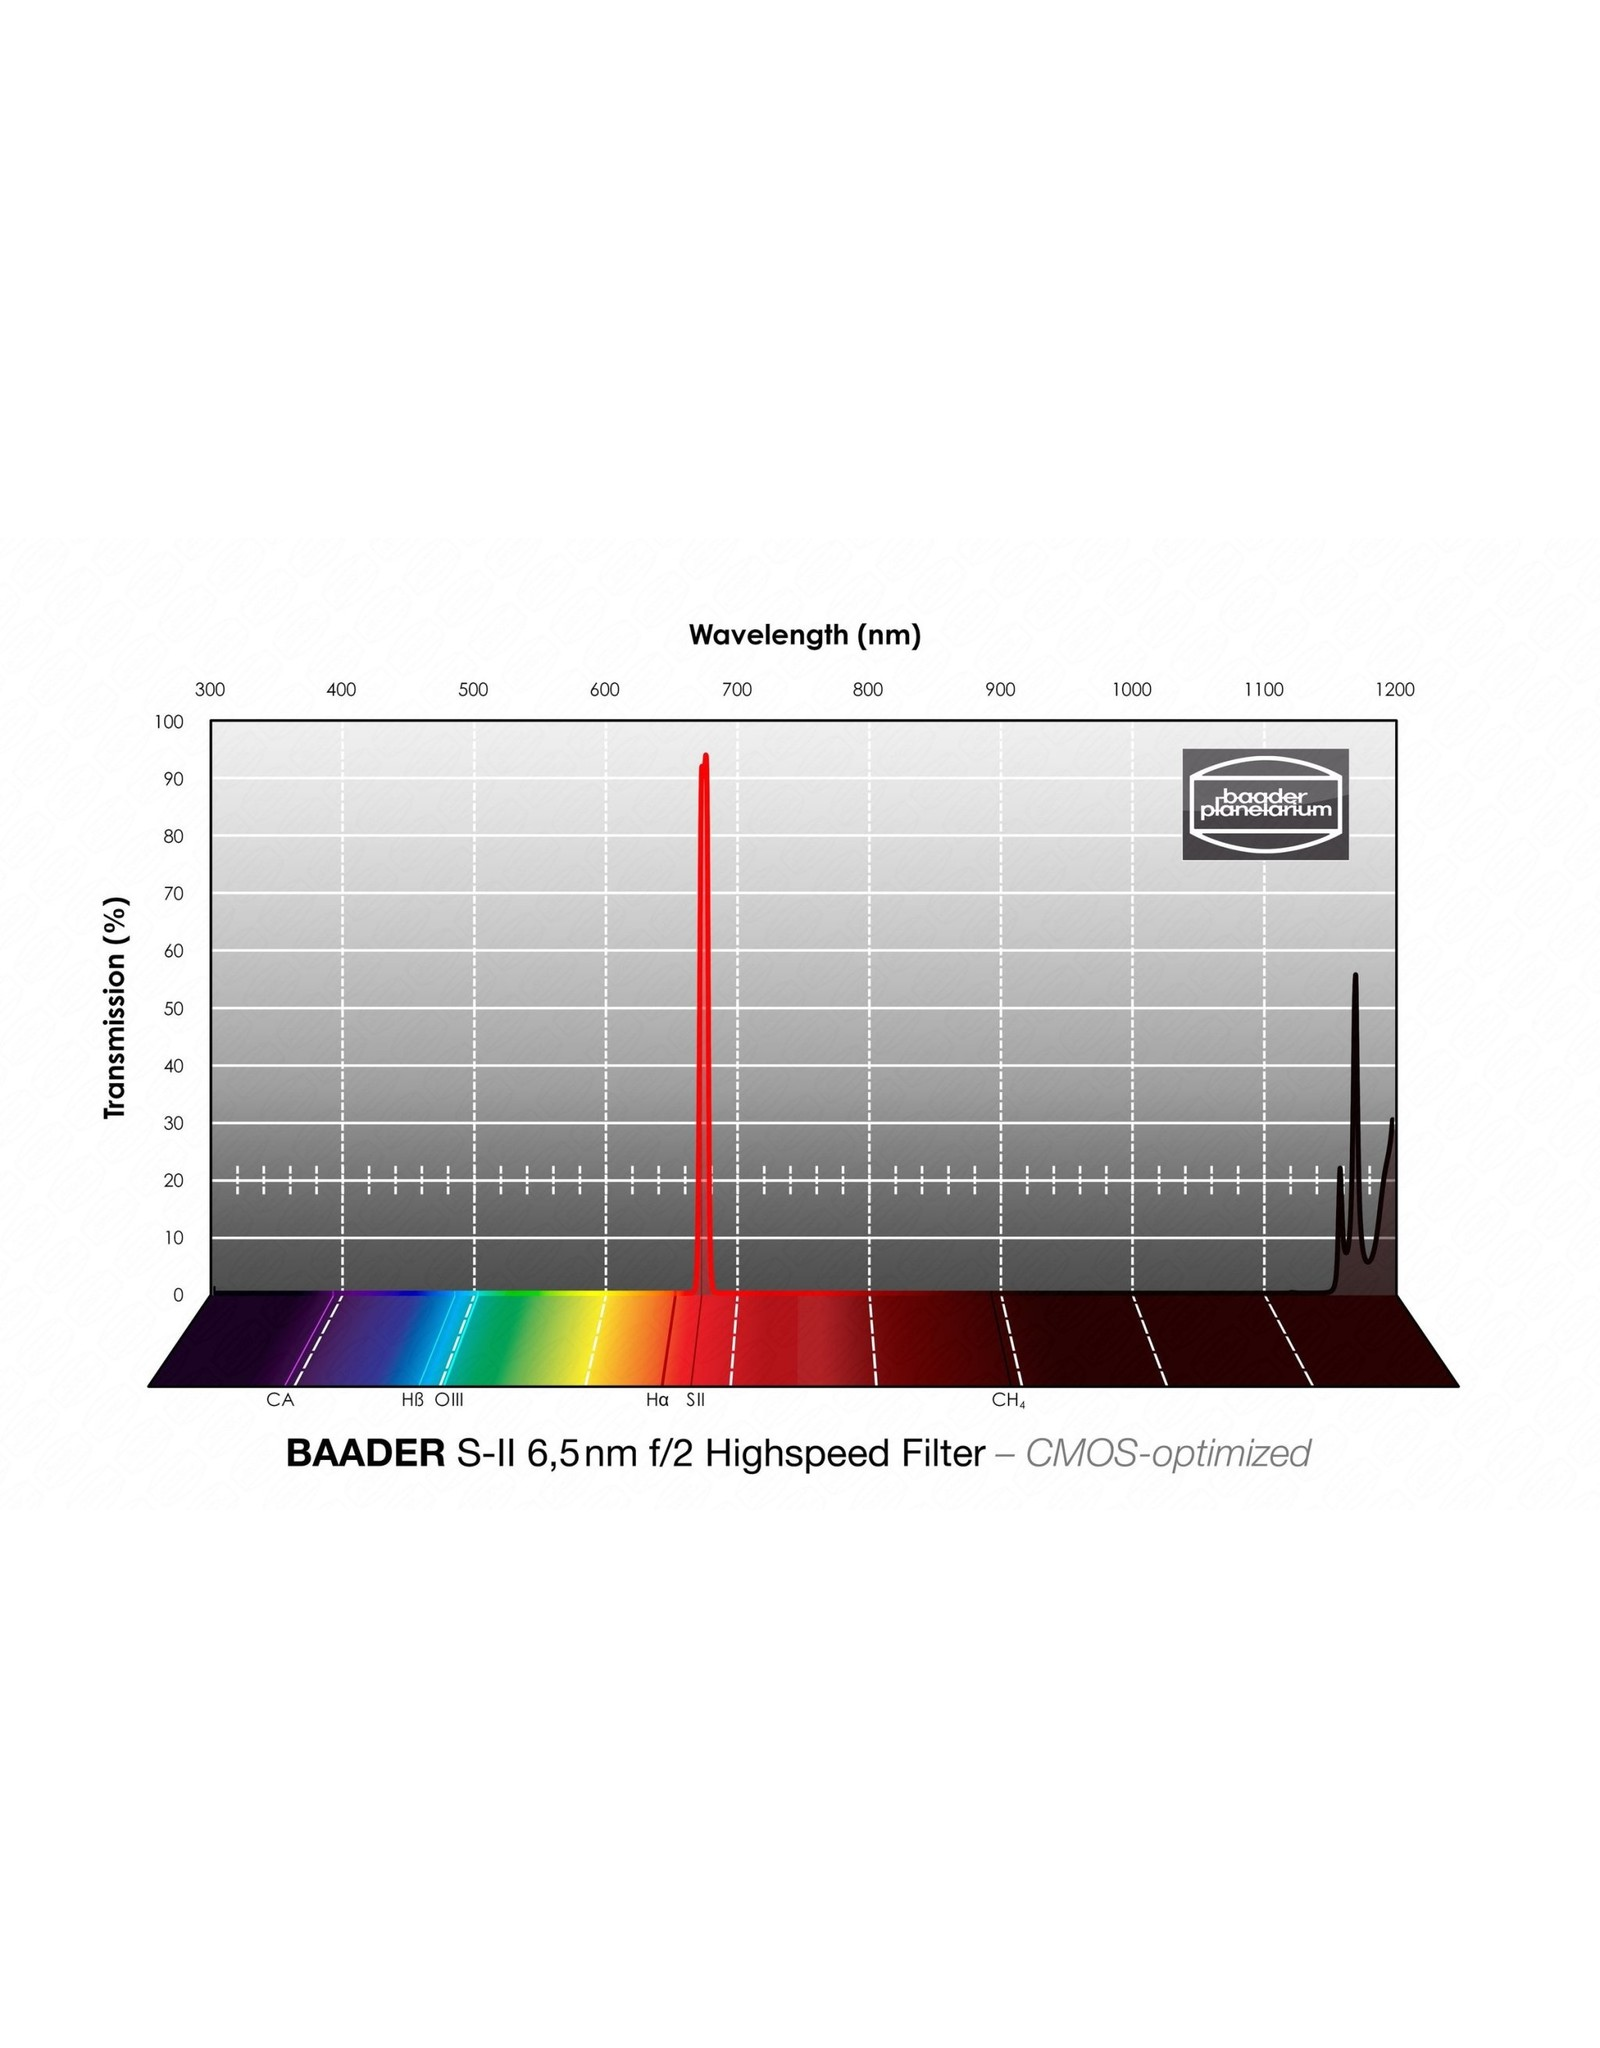 Baader Planetarium Baader 6.5nm f/2 Highspeed H-Alpha Filters – CMOS-optimized (Specify Size)